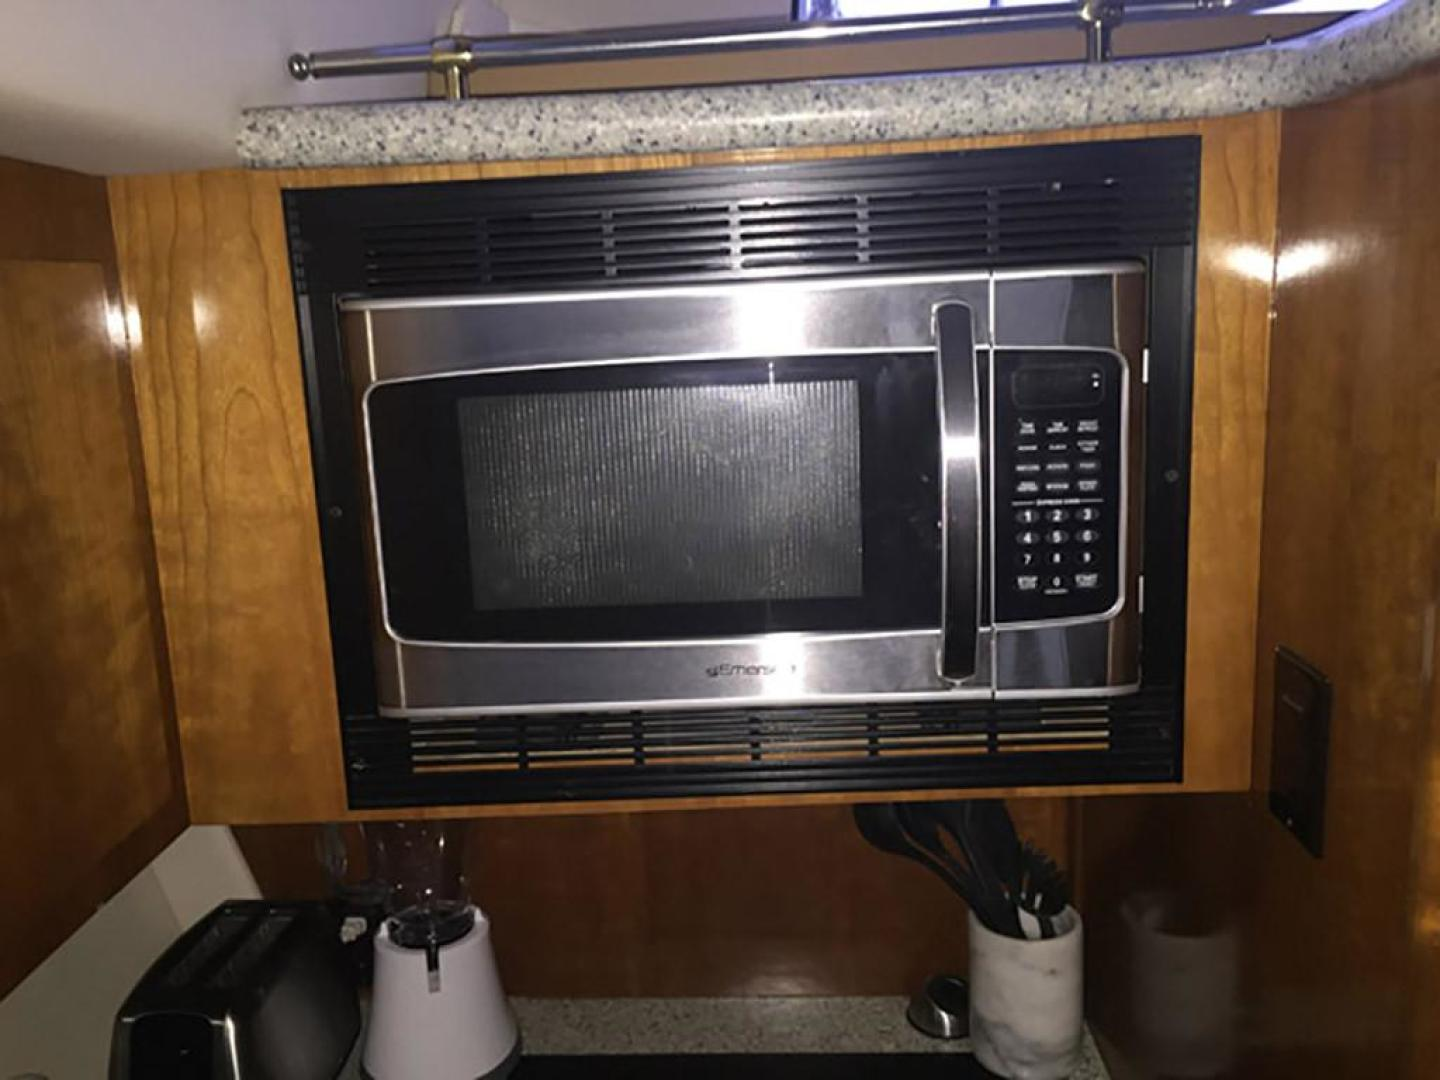 Carver-466 Motor Yacht 2001-Rollin in the Tides Pensacola-Florida-United States-Galley Microwave-377488 | Thumbnail